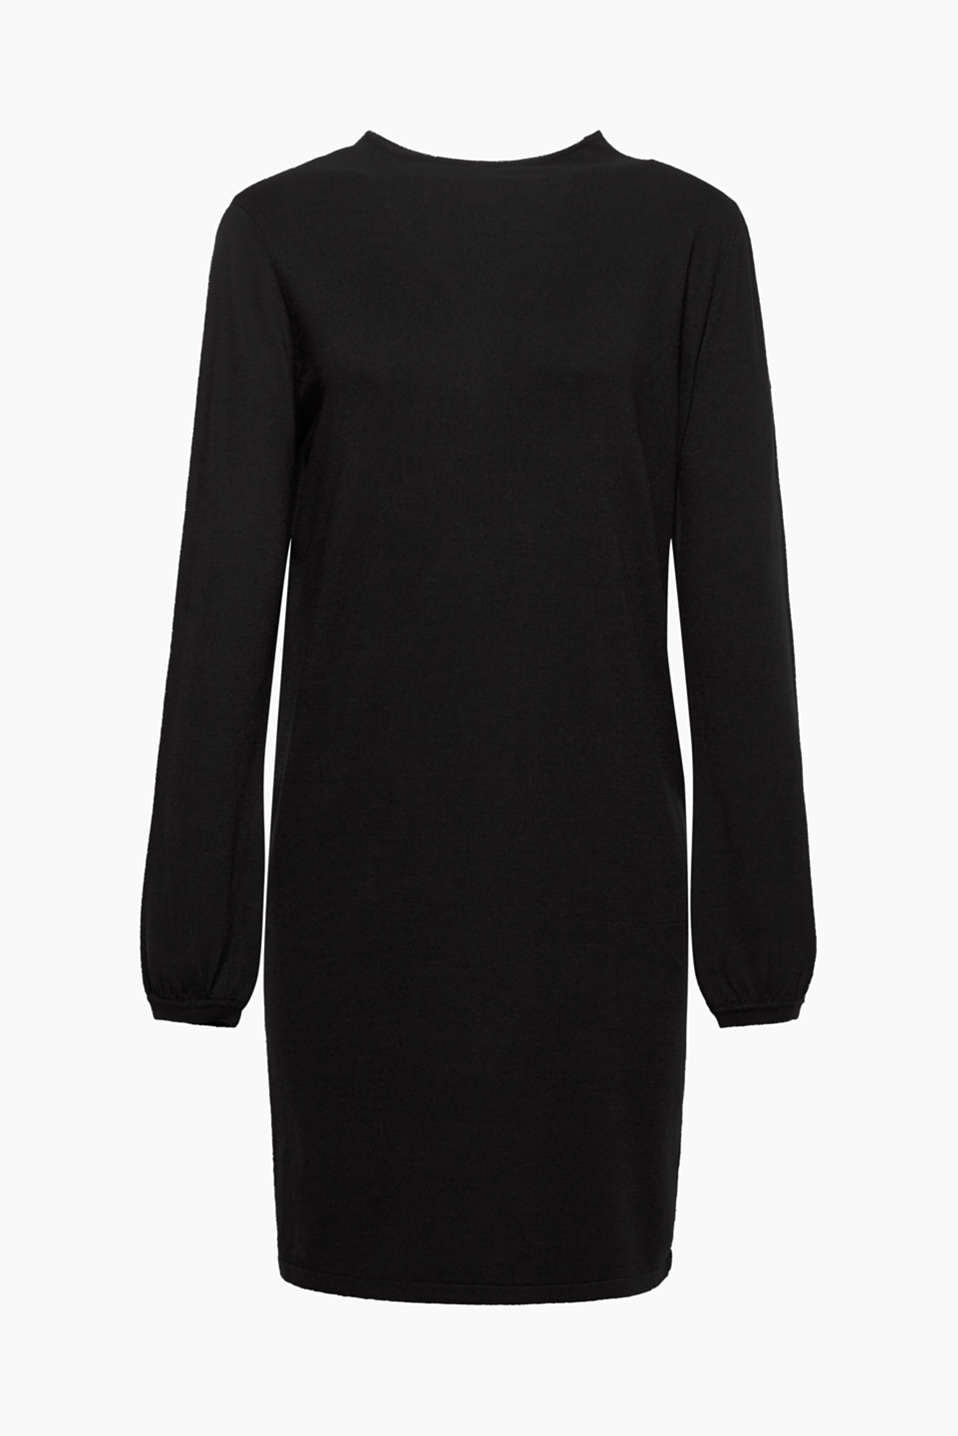 The understated styling of this fine-knit dress draws the eye to the trendy balloon sleeves and turtleneck!